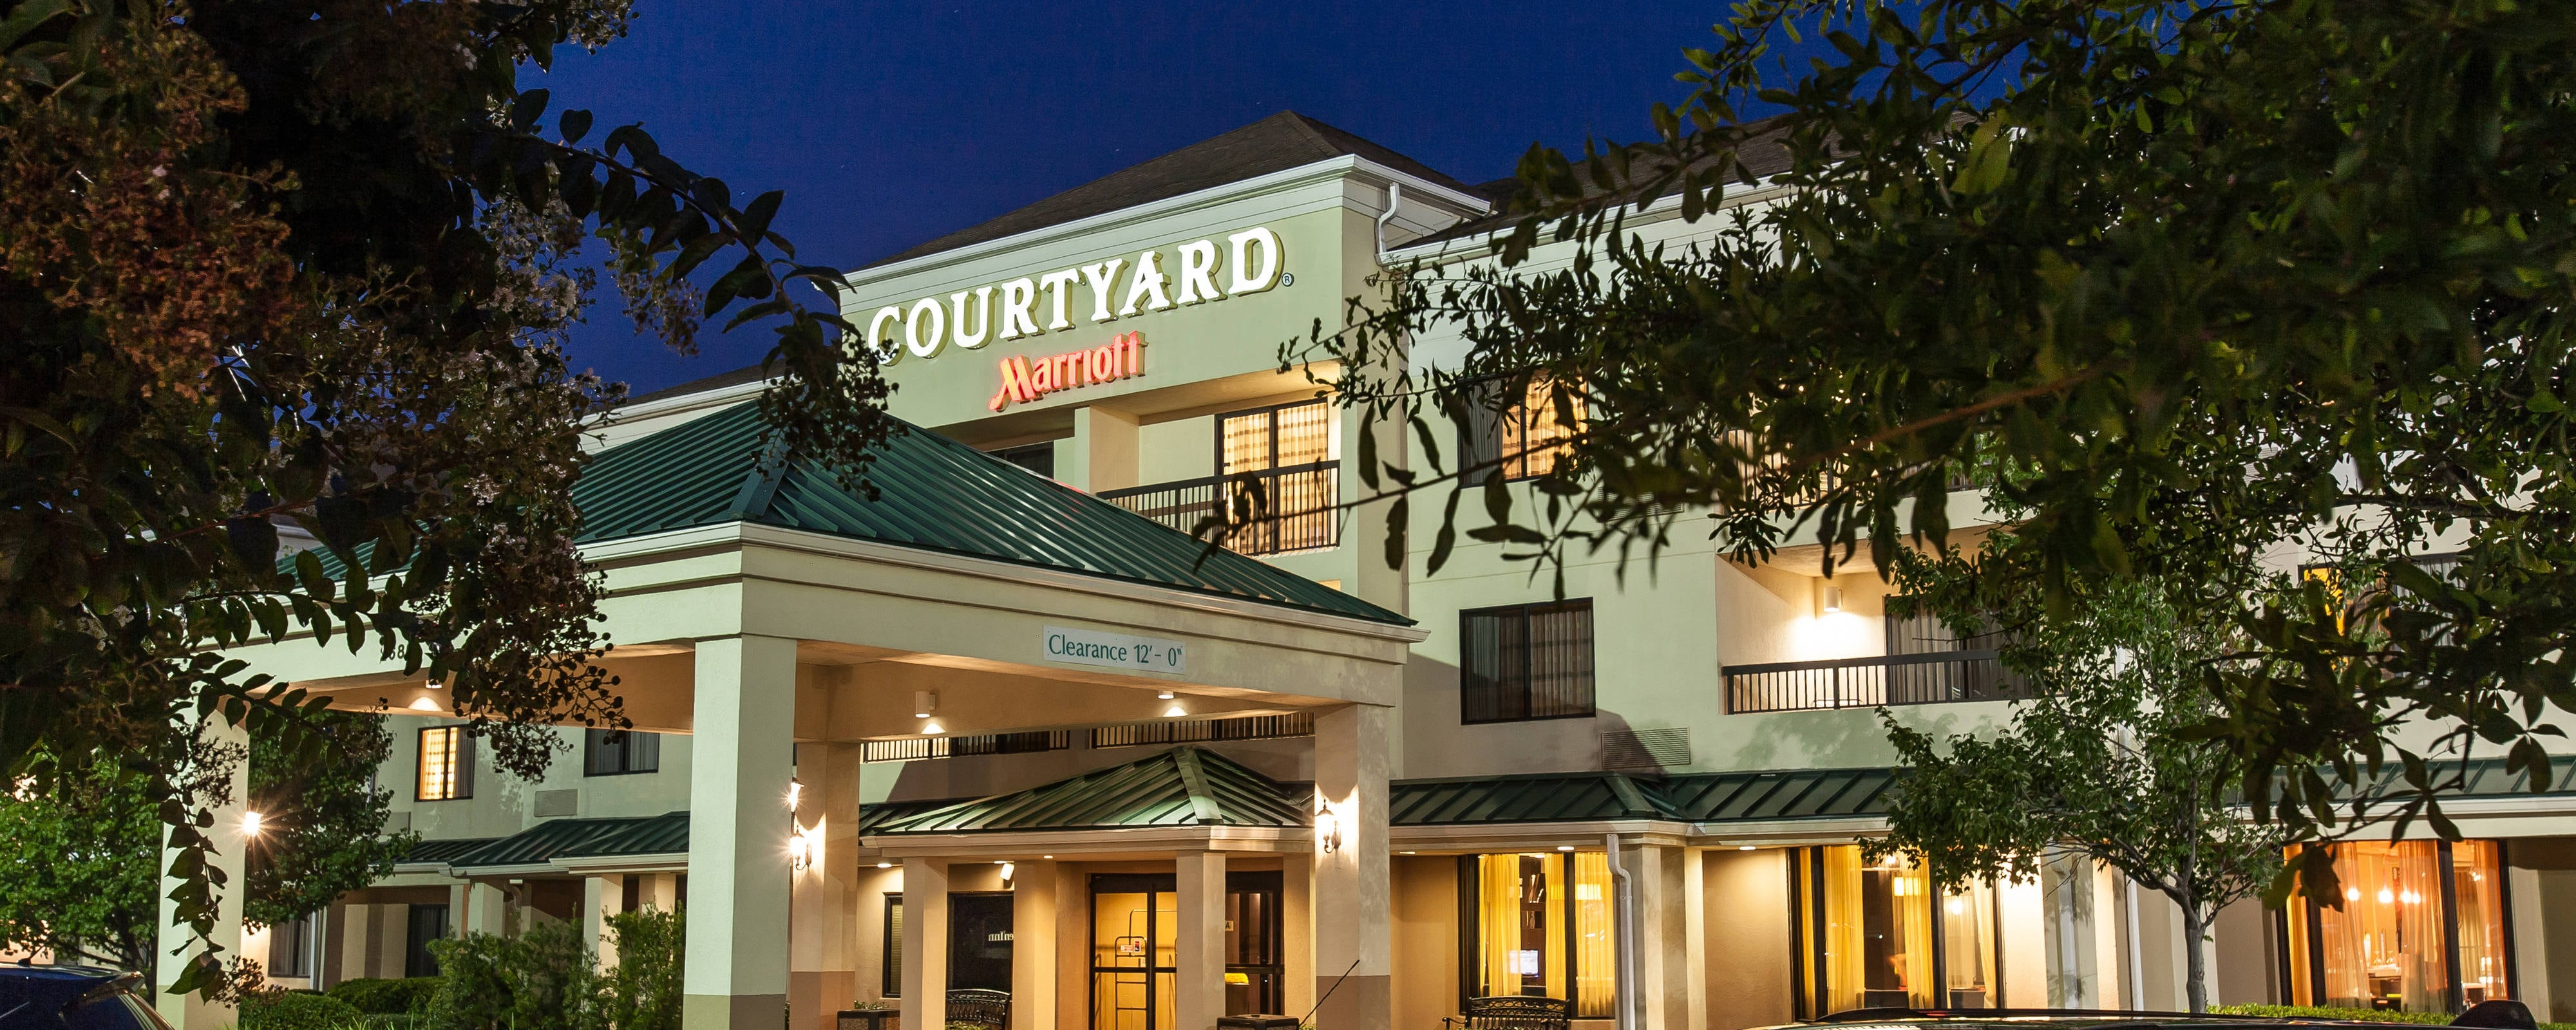 Florence Courtyard Marriott Exterior